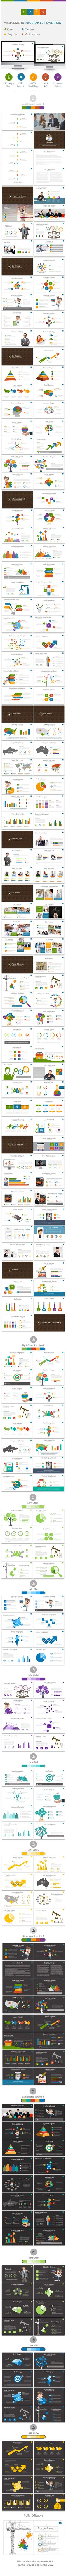 Effective-Multipurpose Powerpoint Template #powerpoint #presentation Download: http://graphicriver.net/item/effectivemultipurpose-powerpoint-template/11515806?ref=ksioks